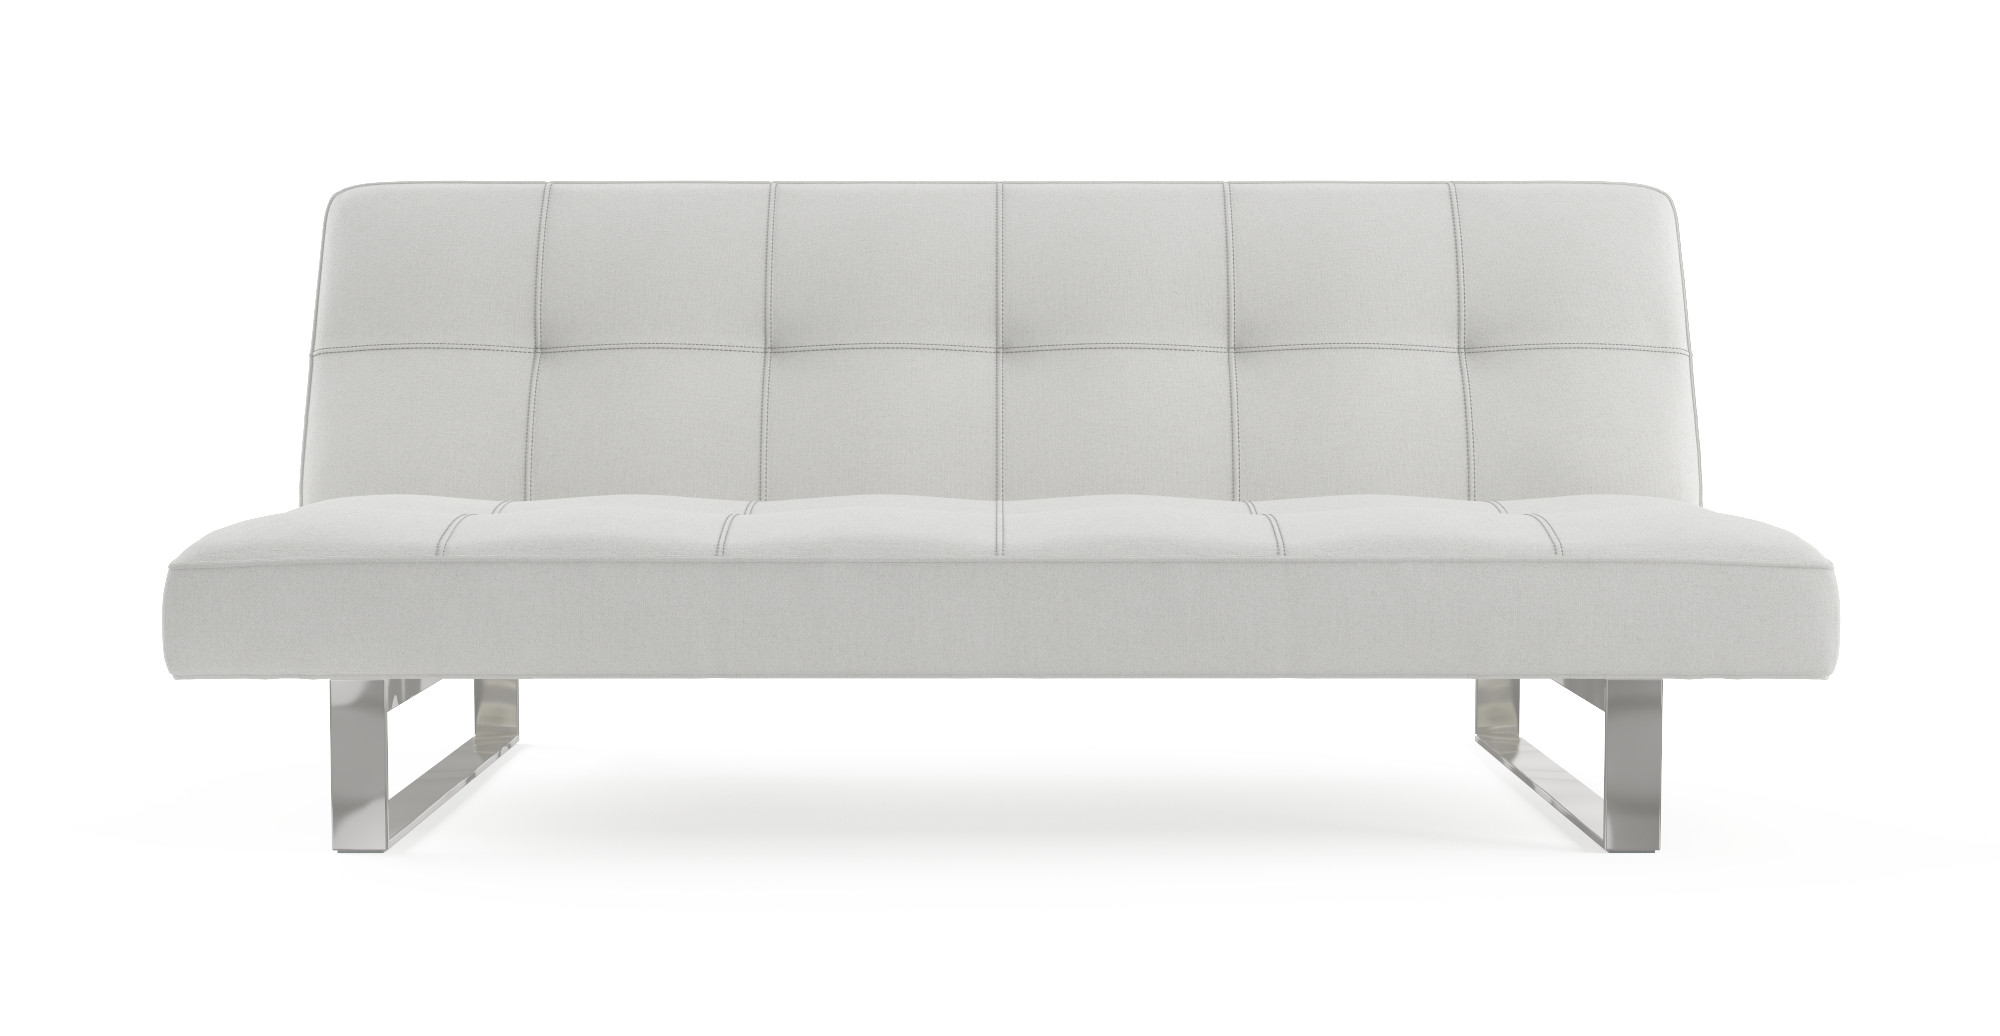 Brilliant Buy Doze 3 Seater Sofa Bed Online In Australia Brosa Gmtry Best Dining Table And Chair Ideas Images Gmtryco